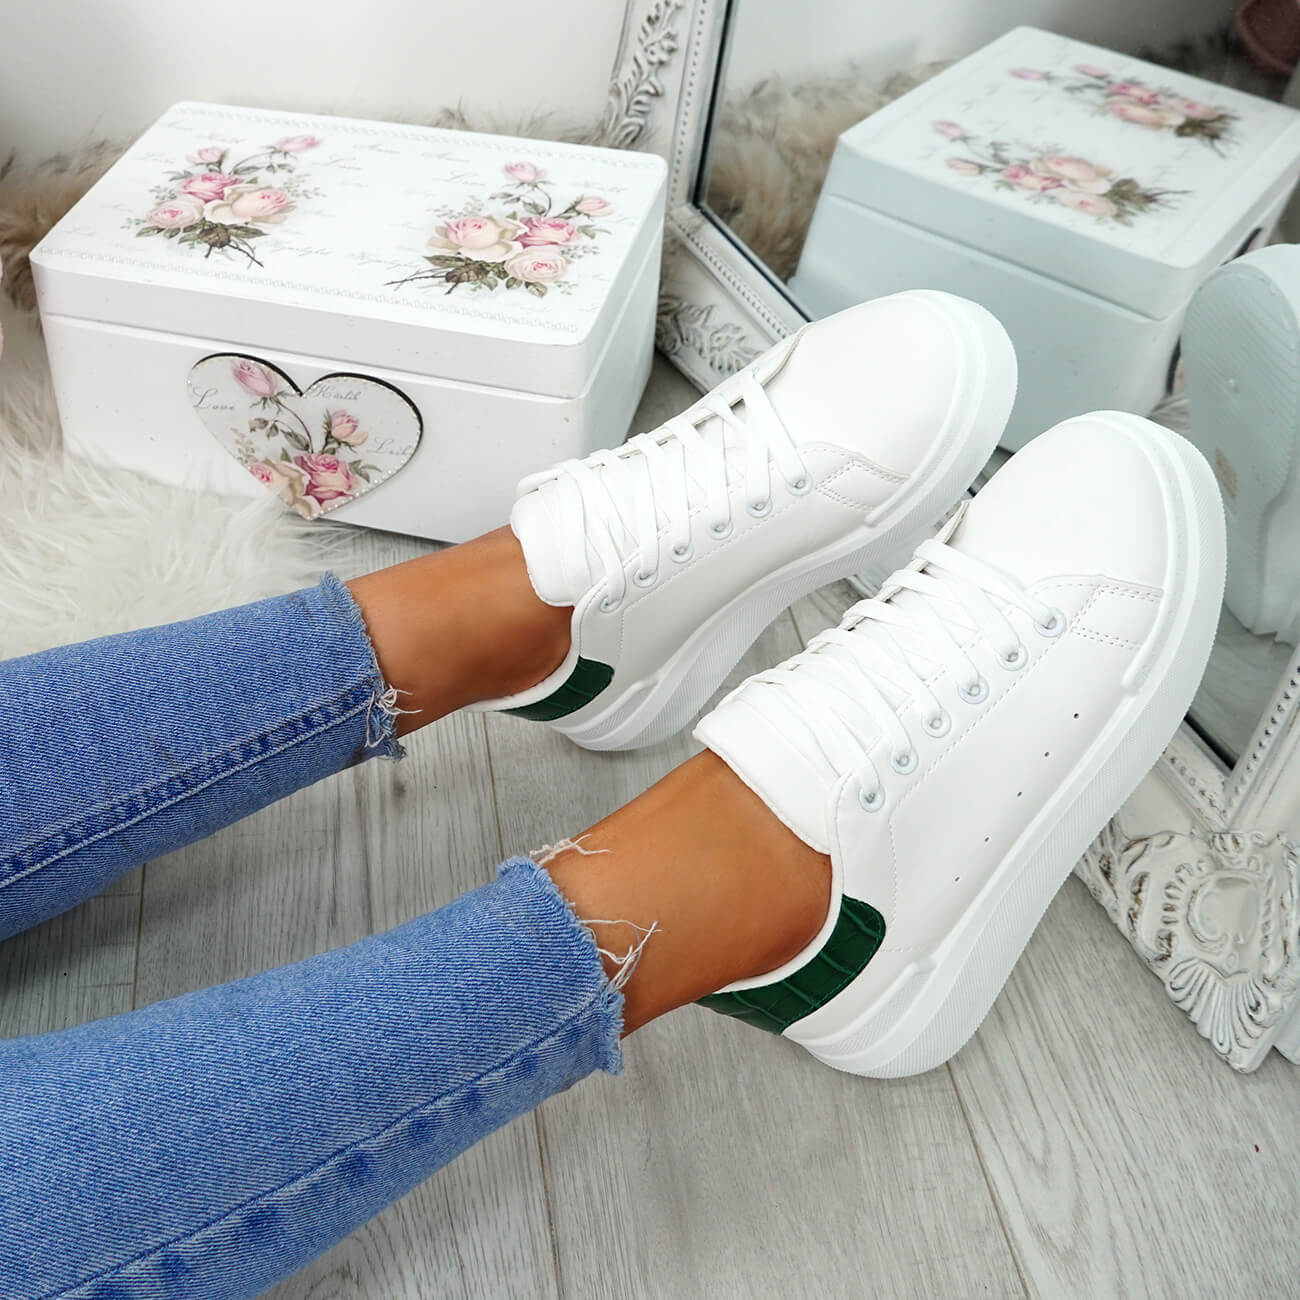 WOMENS-LADIES-LACE-UP-PLIMSOLL-SNEAKERS-CROC-SNAKE-TRAINERS-CASUAL-SHOES-SIZE thumbnail 48